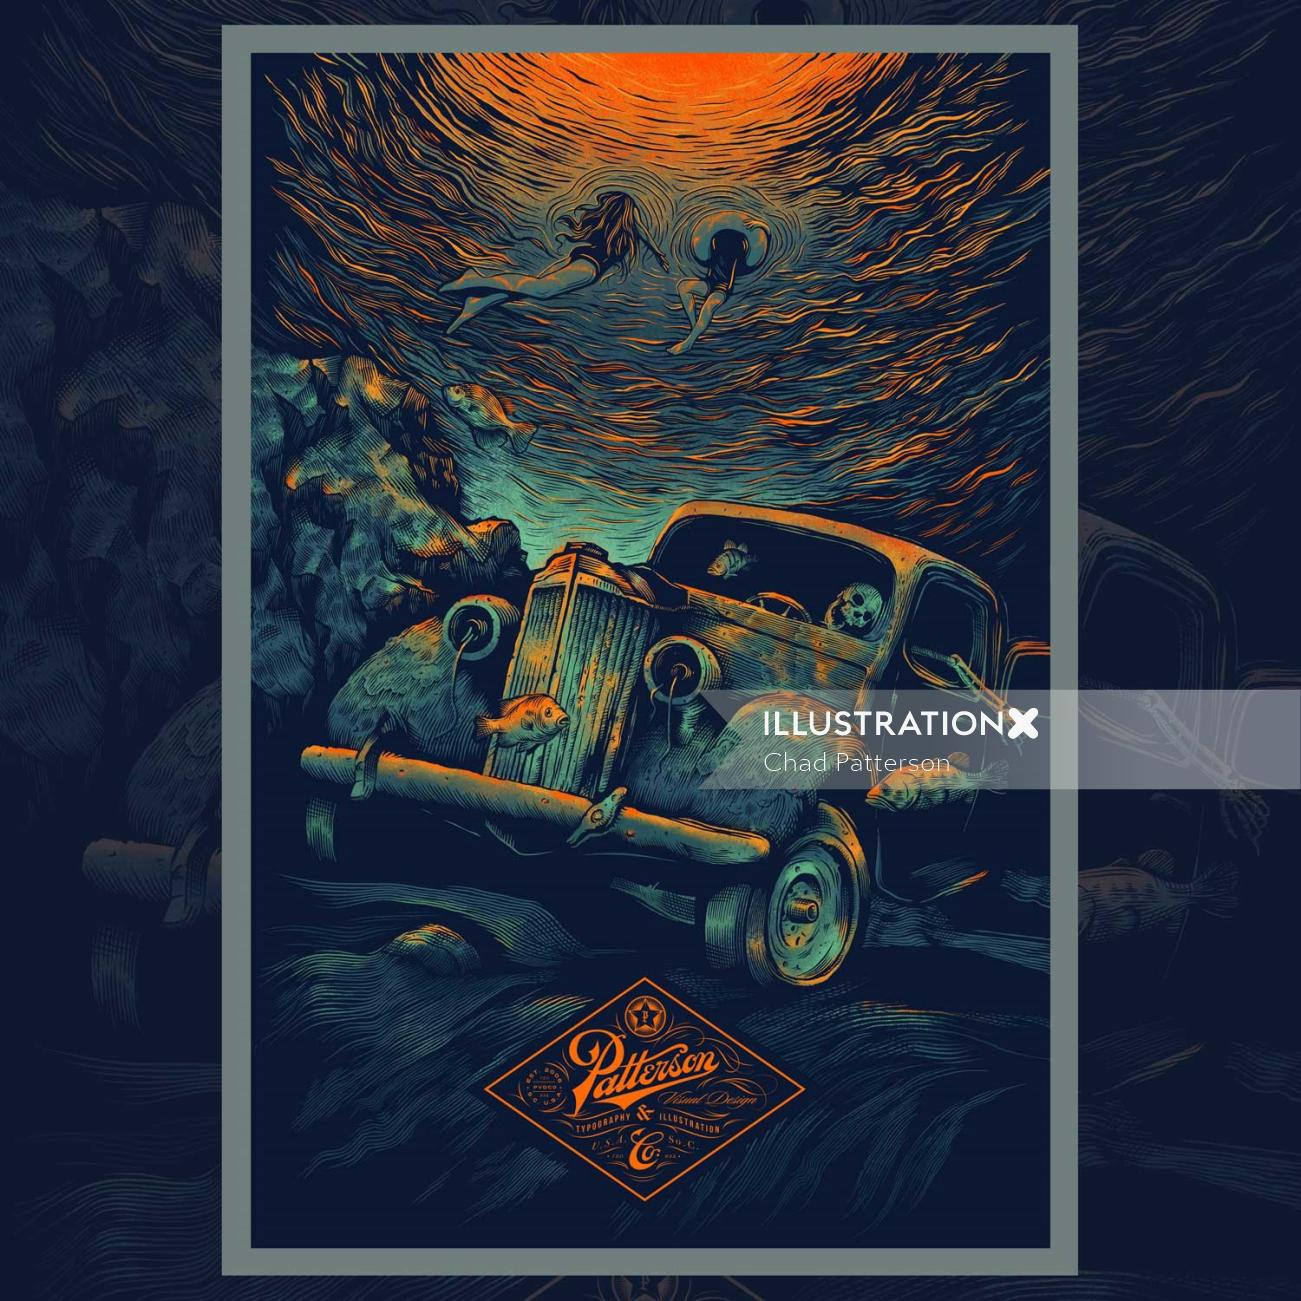 Decorative car poster design by Chad Patterson